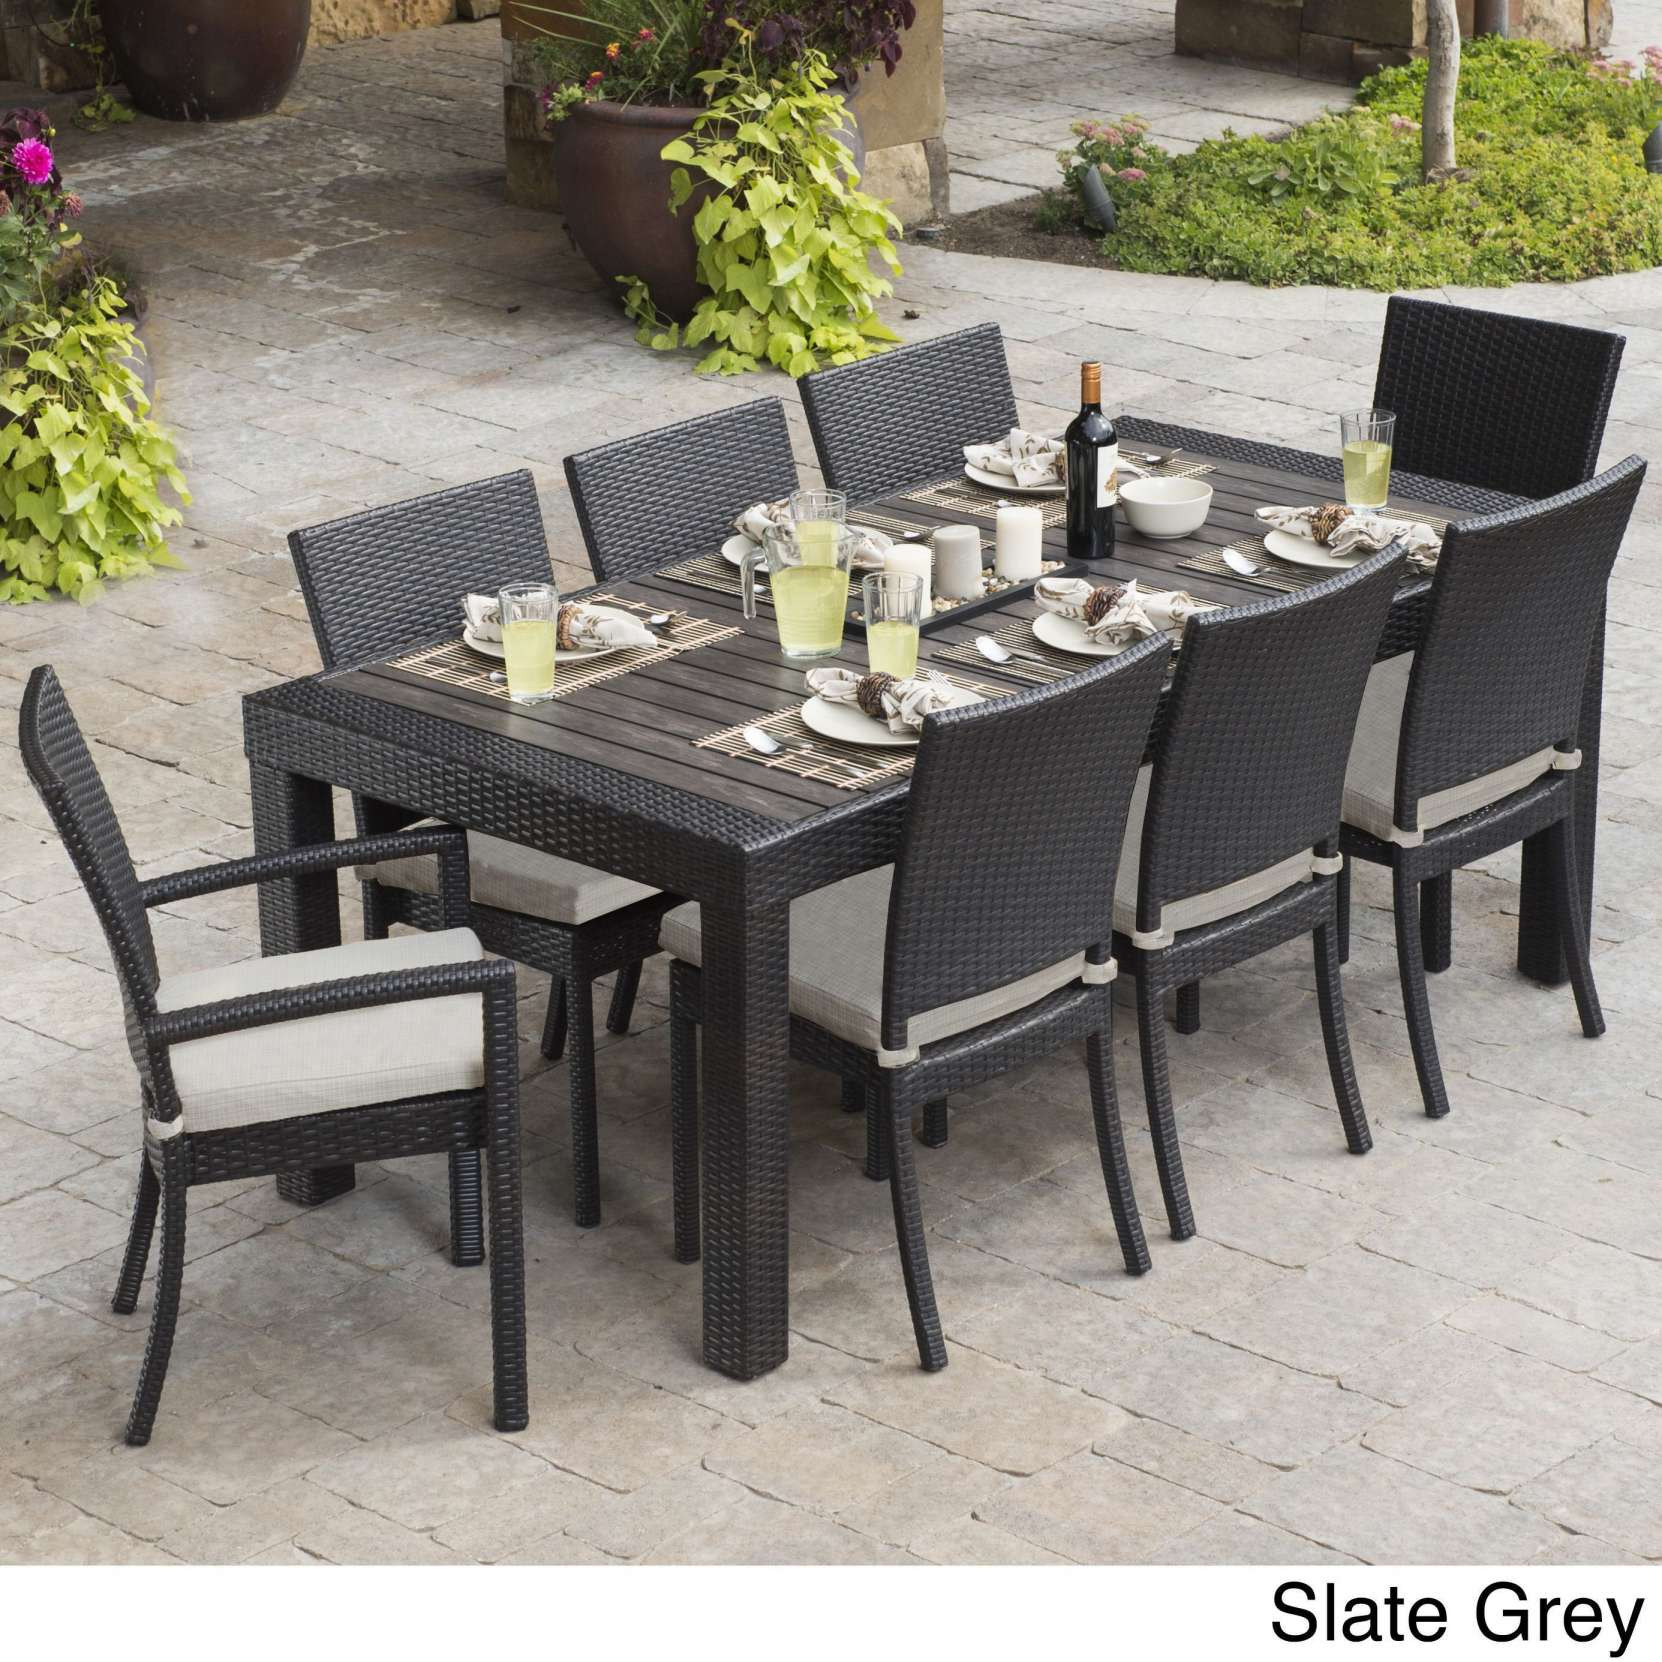 Best ideas about Recycled Plastic Patio Furniture . Save or Pin Recycled Plastic Patio Furniture Outdoor Sets Modern Ideas Now.